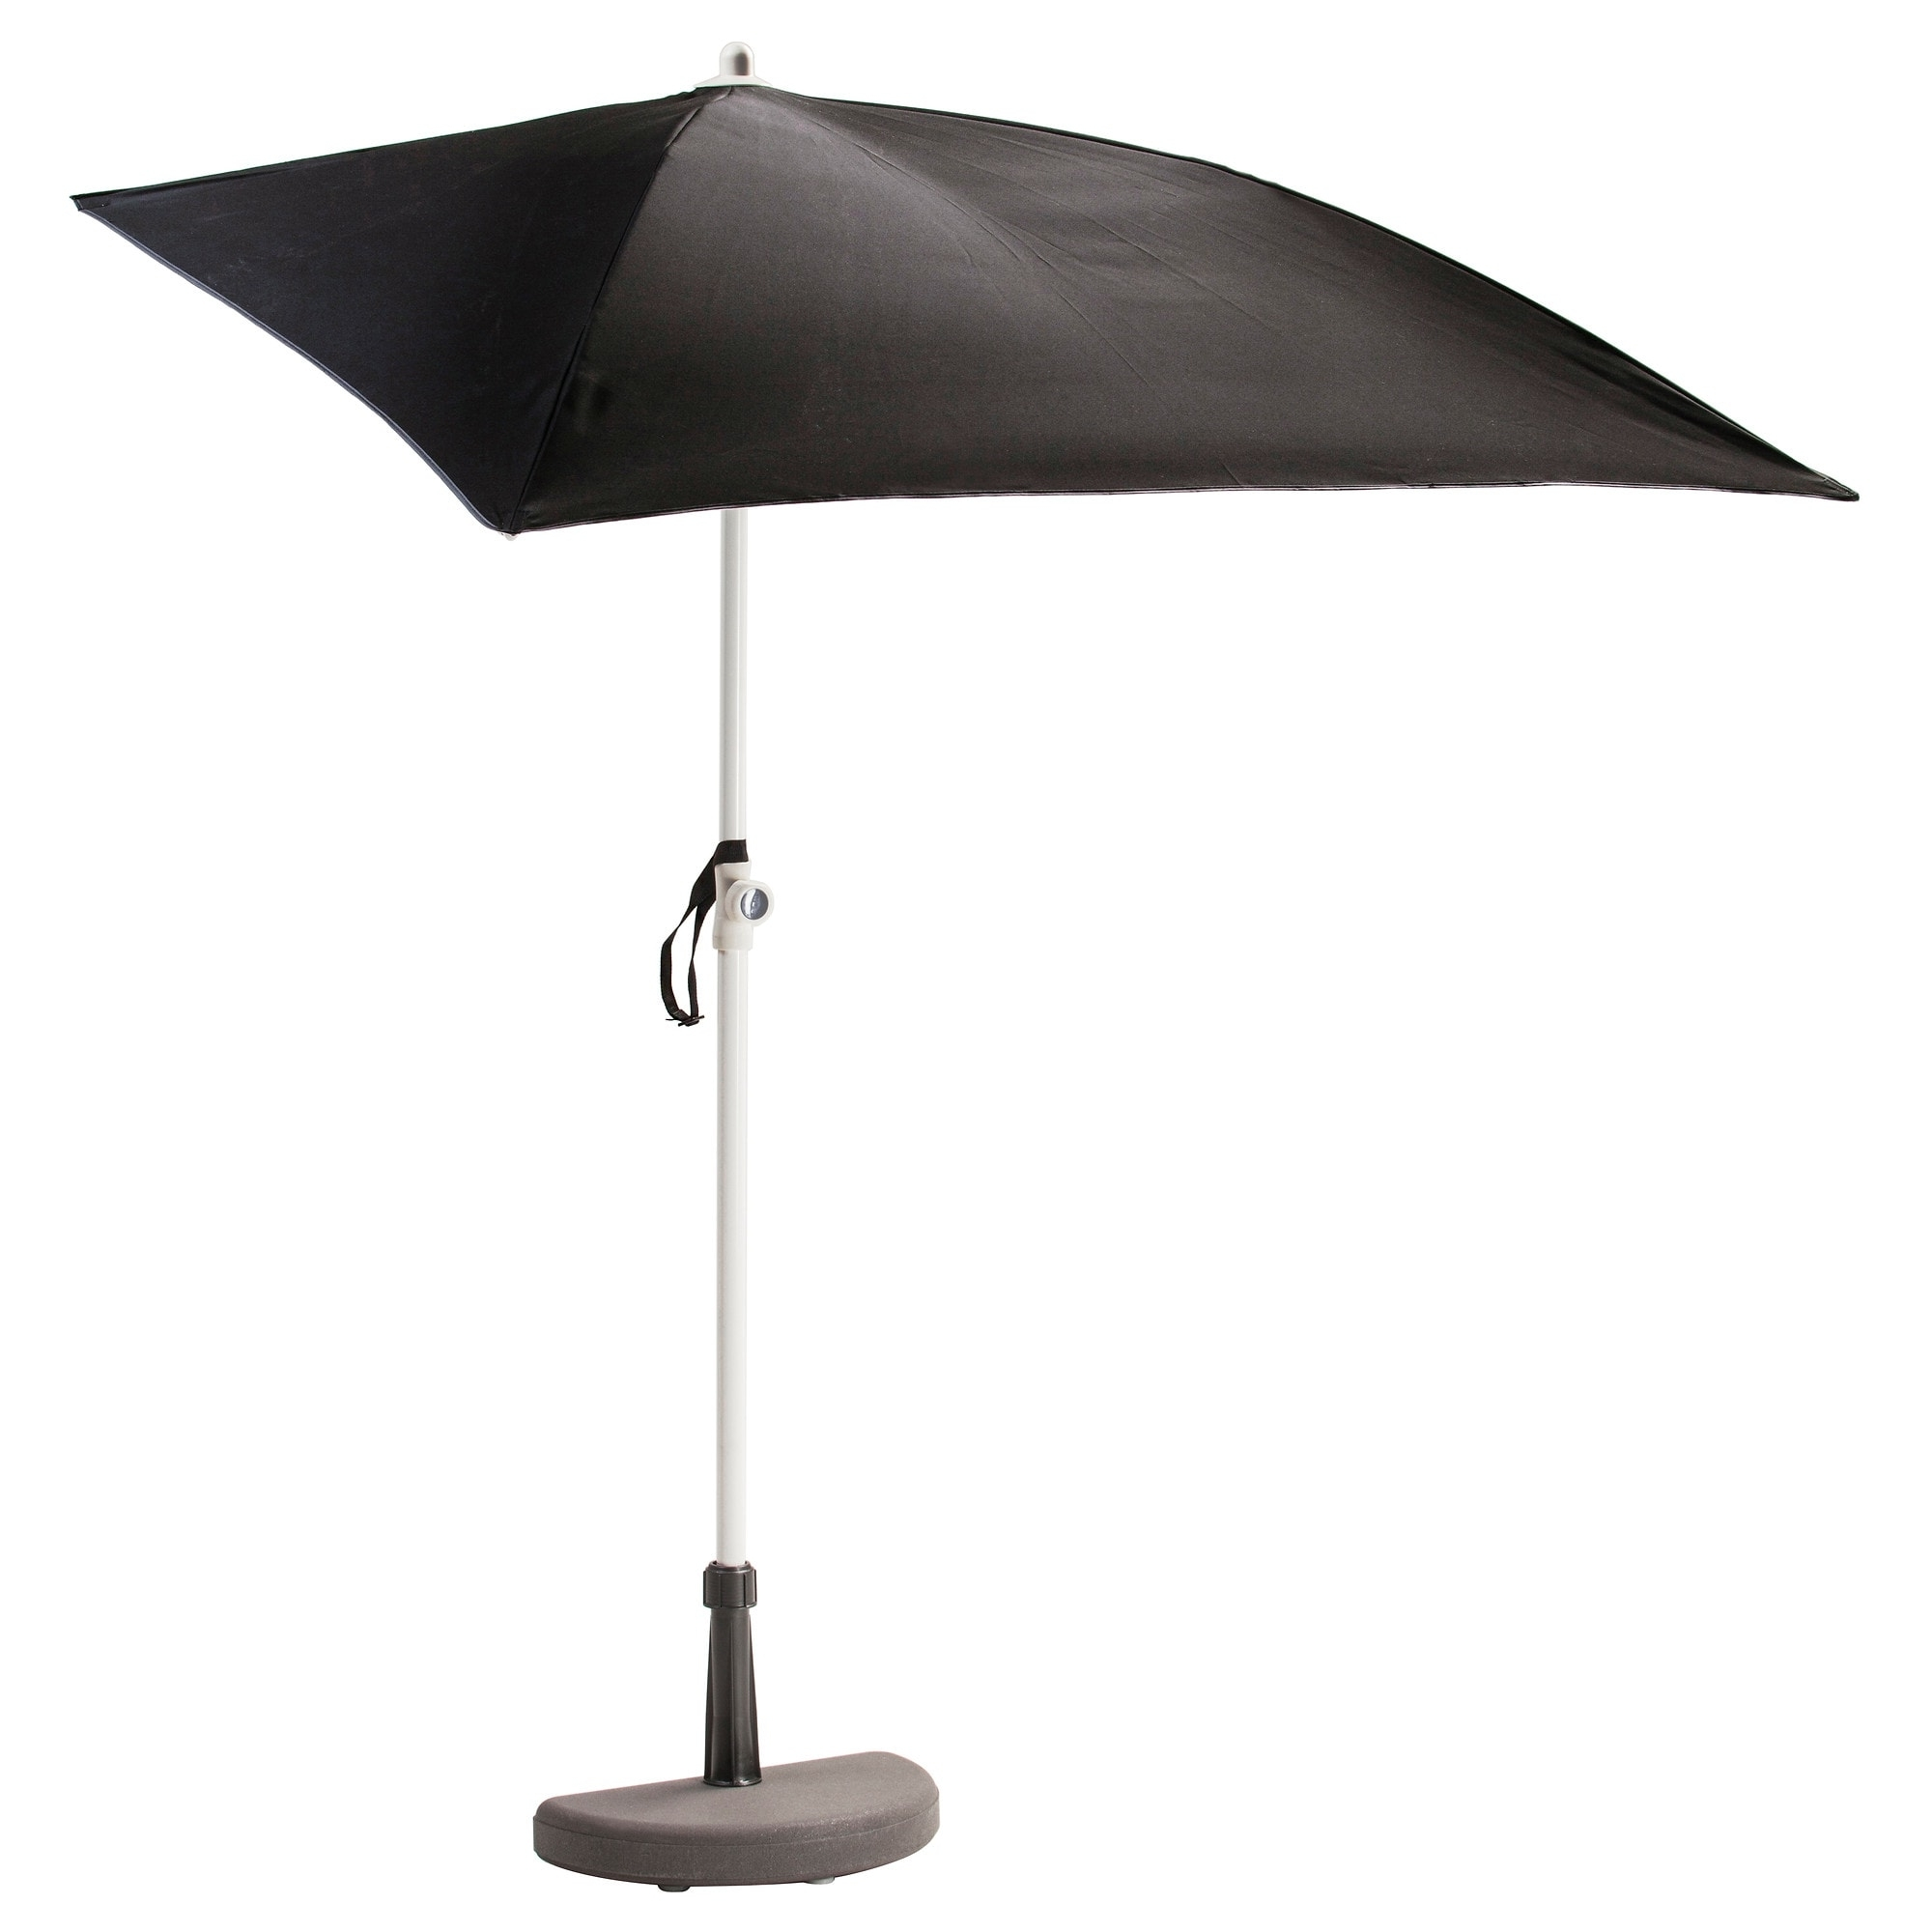 Widely Used Ikea Patio Umbrellas Intended For Bramsön / Flisö Parasol With Base – Ikea (View 20 of 20)